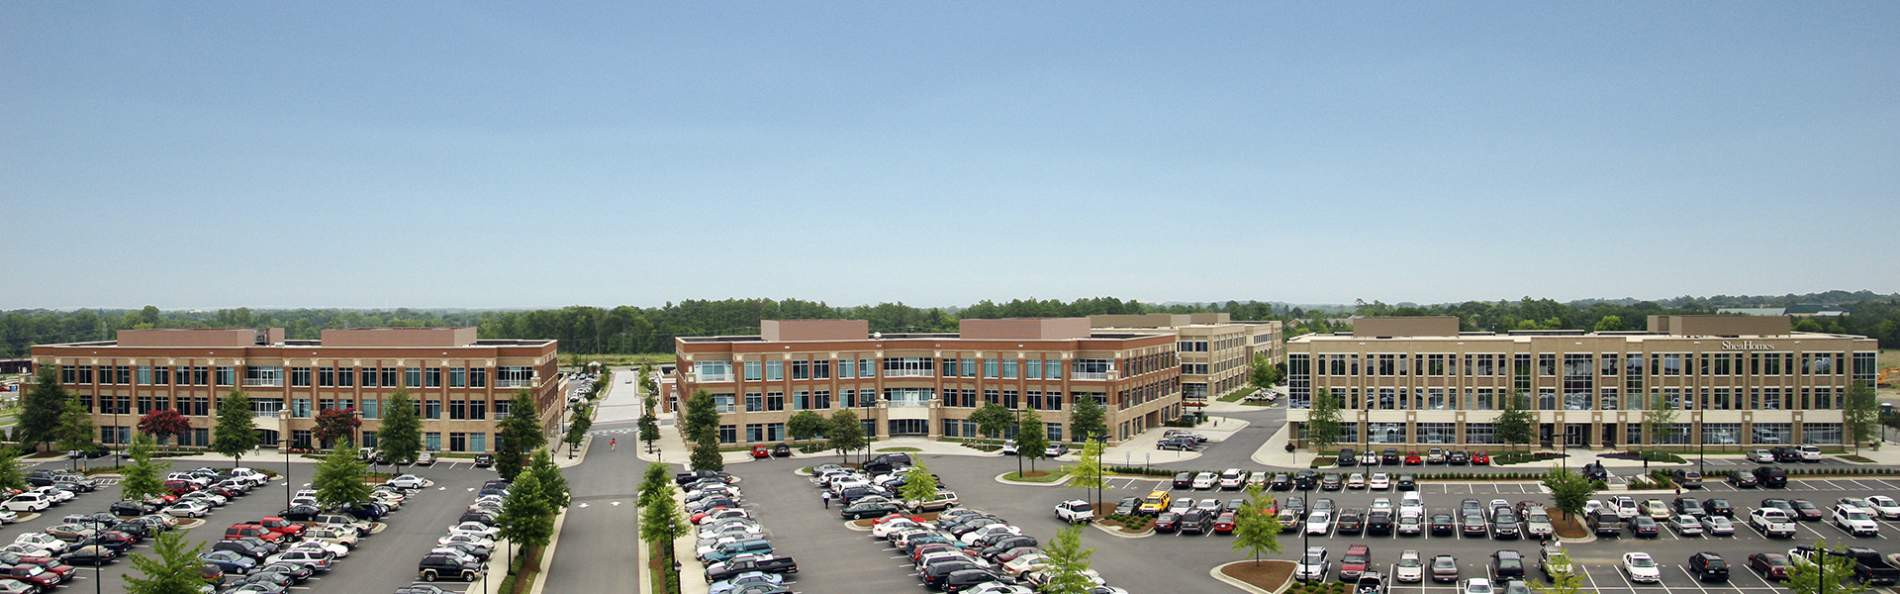 Residential, retail, and office space